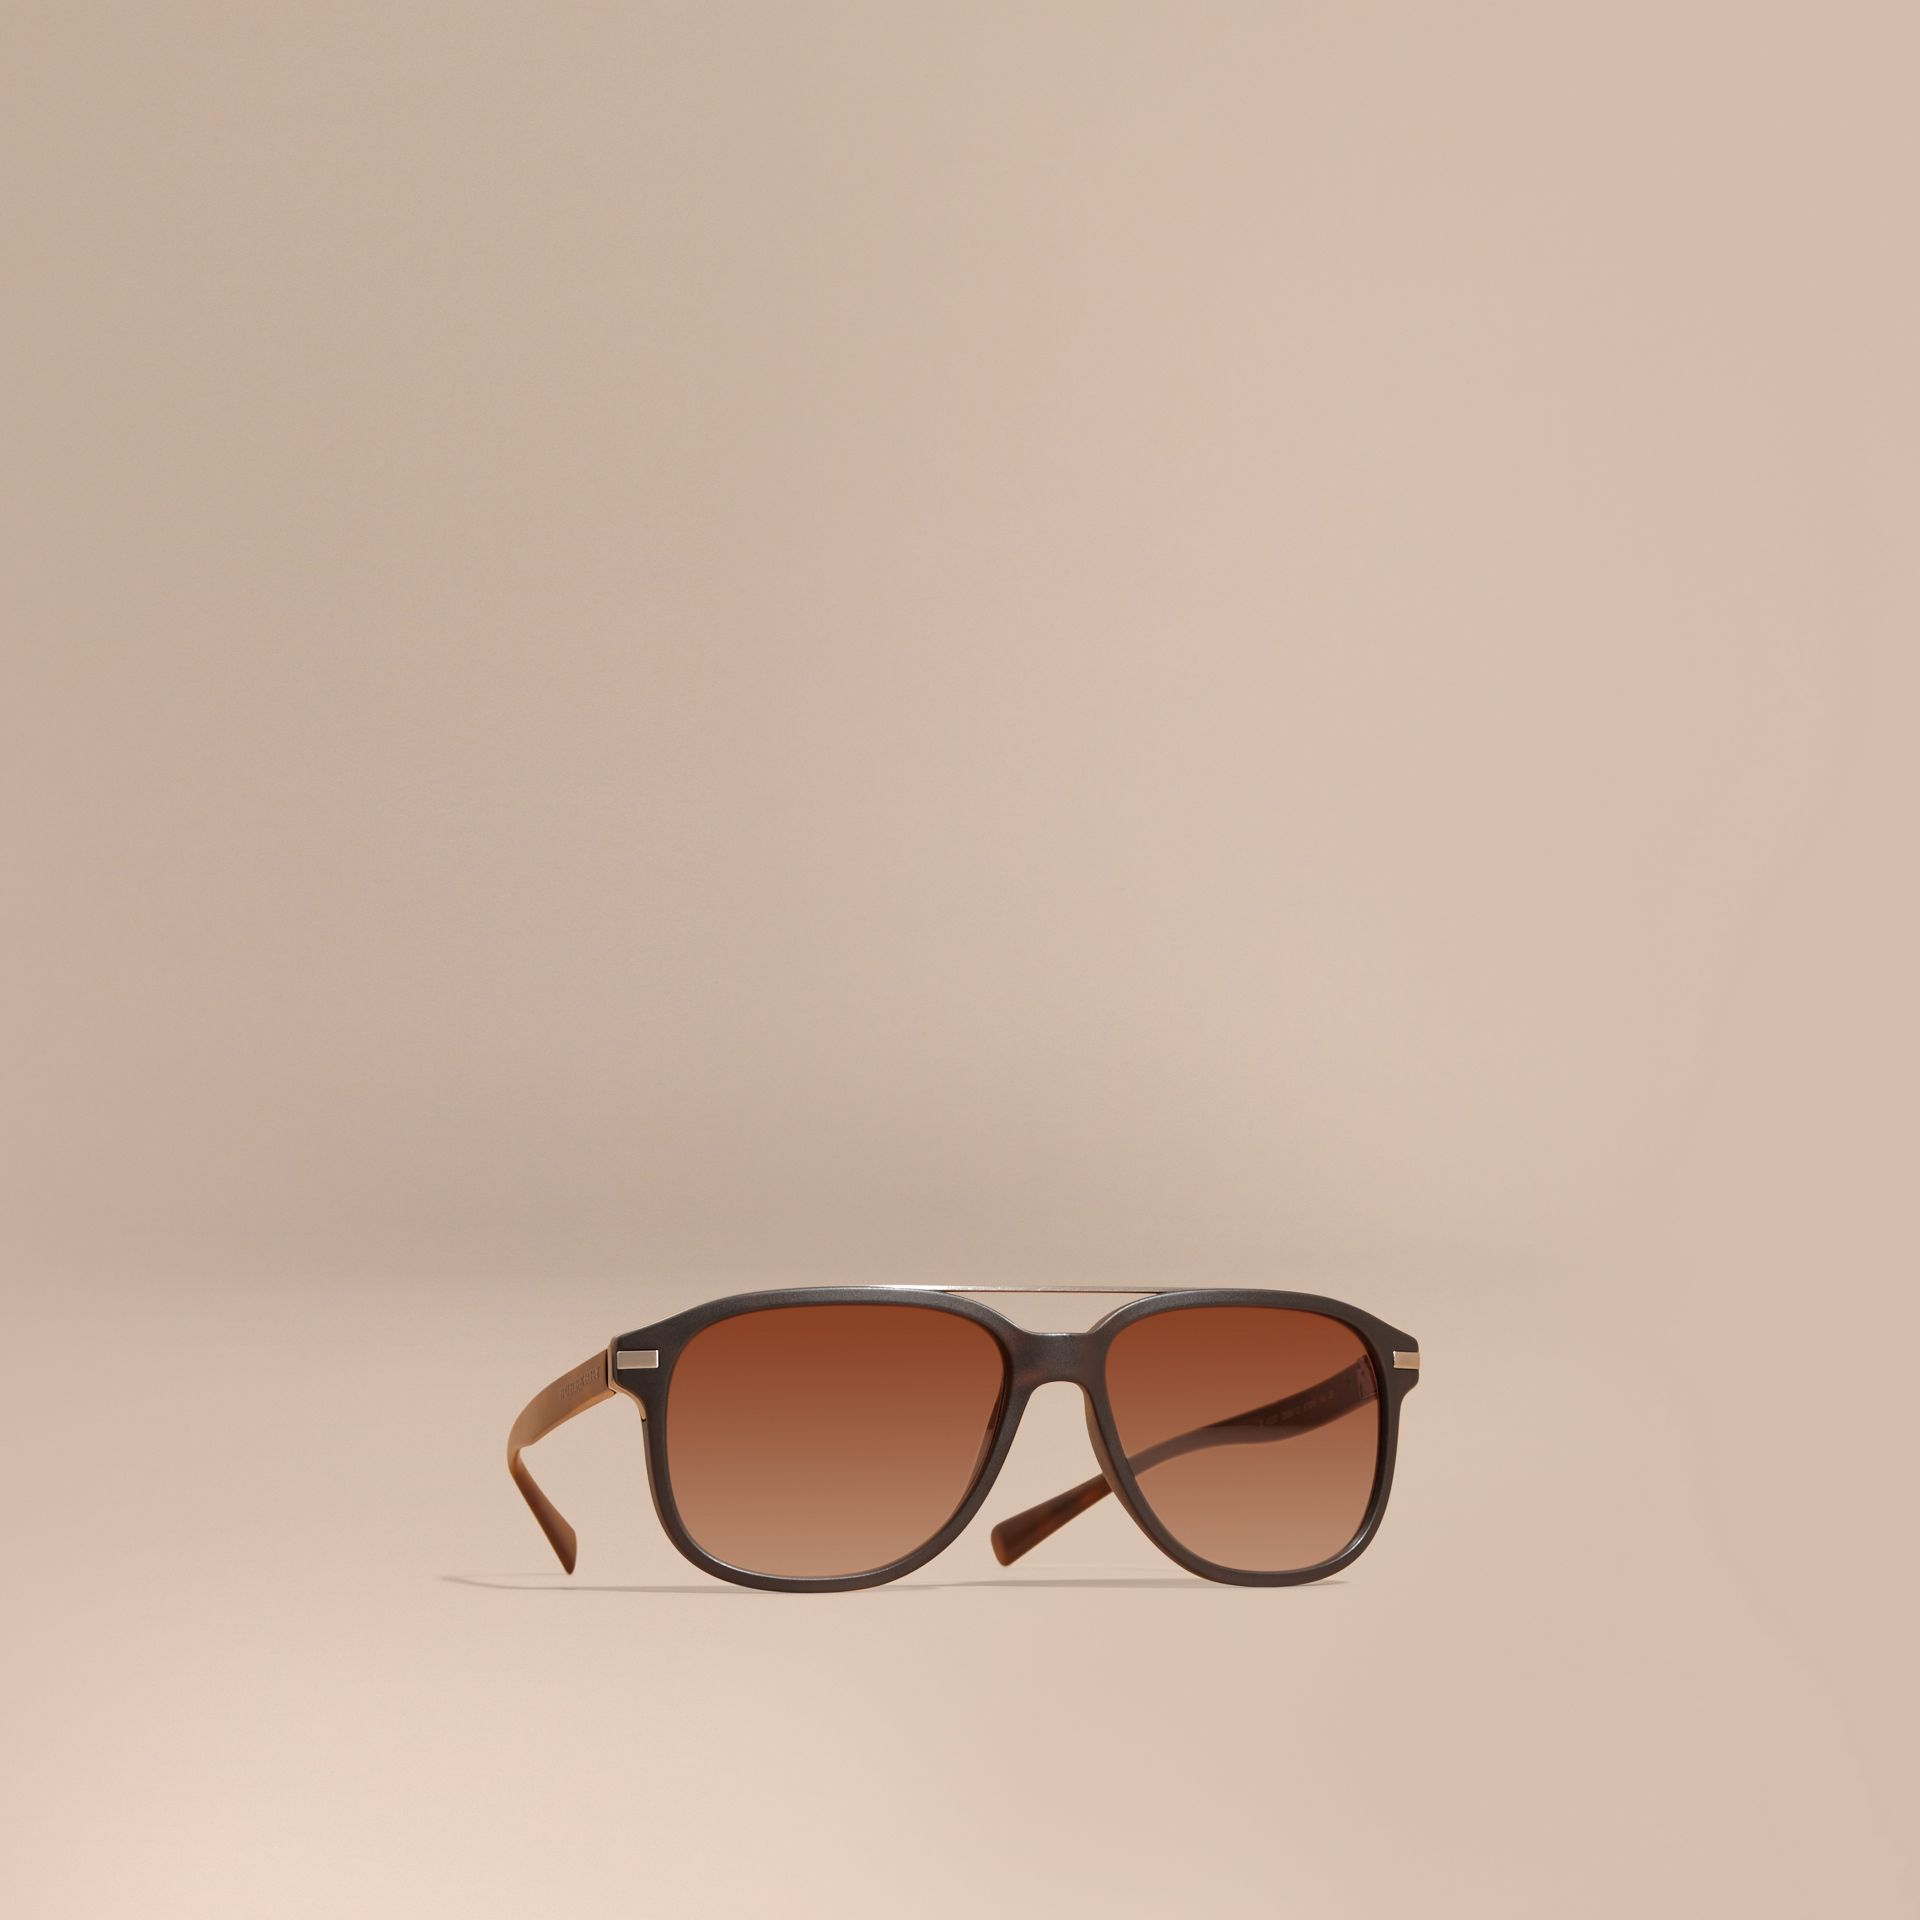 Square Frame Sunglasses in Tortoise Shell - Men | Burberry - gallery image 1